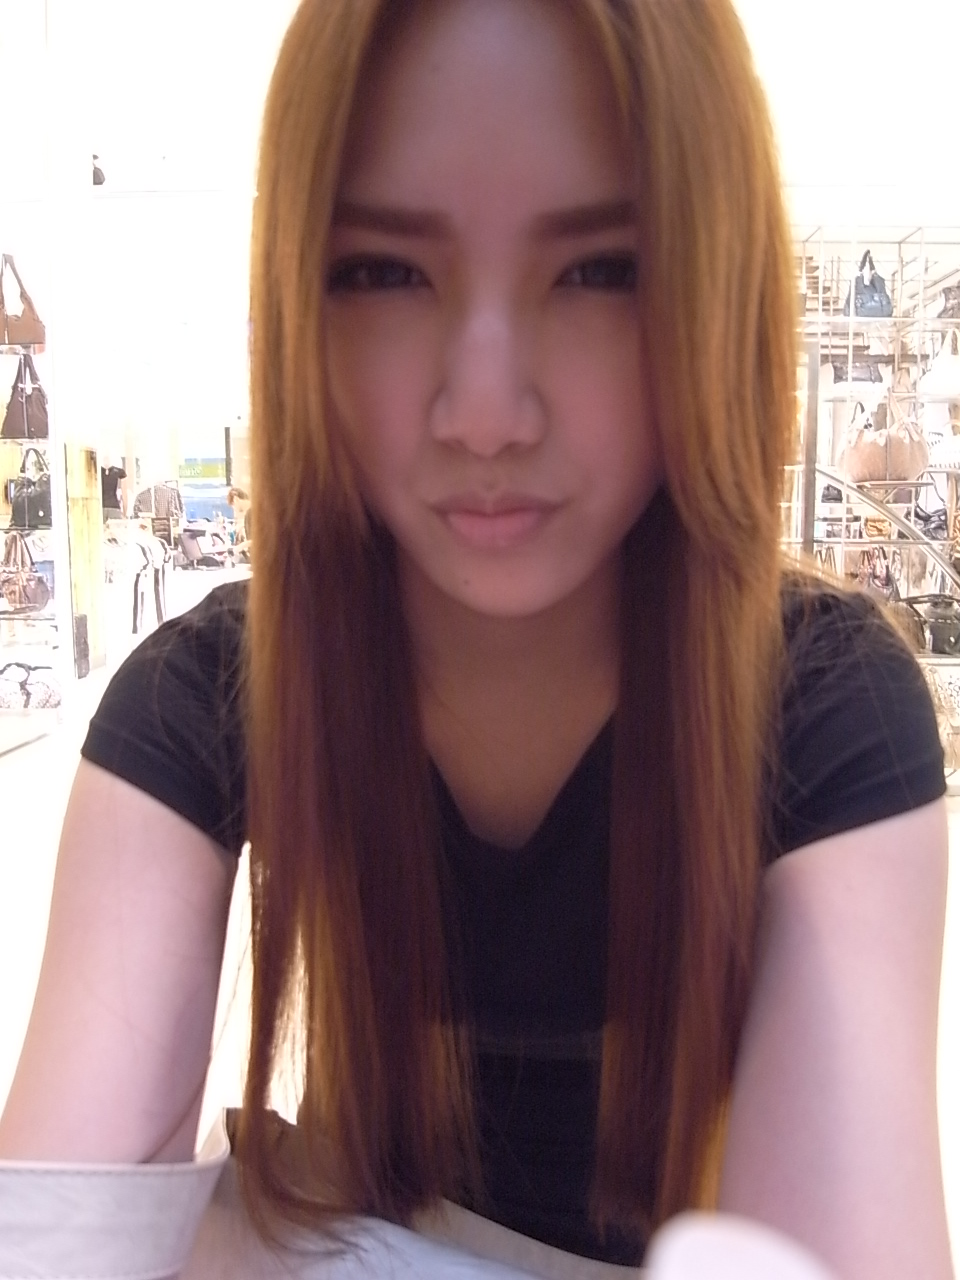 too dark dyed hair to download how to lighten too dark dyed hair ...